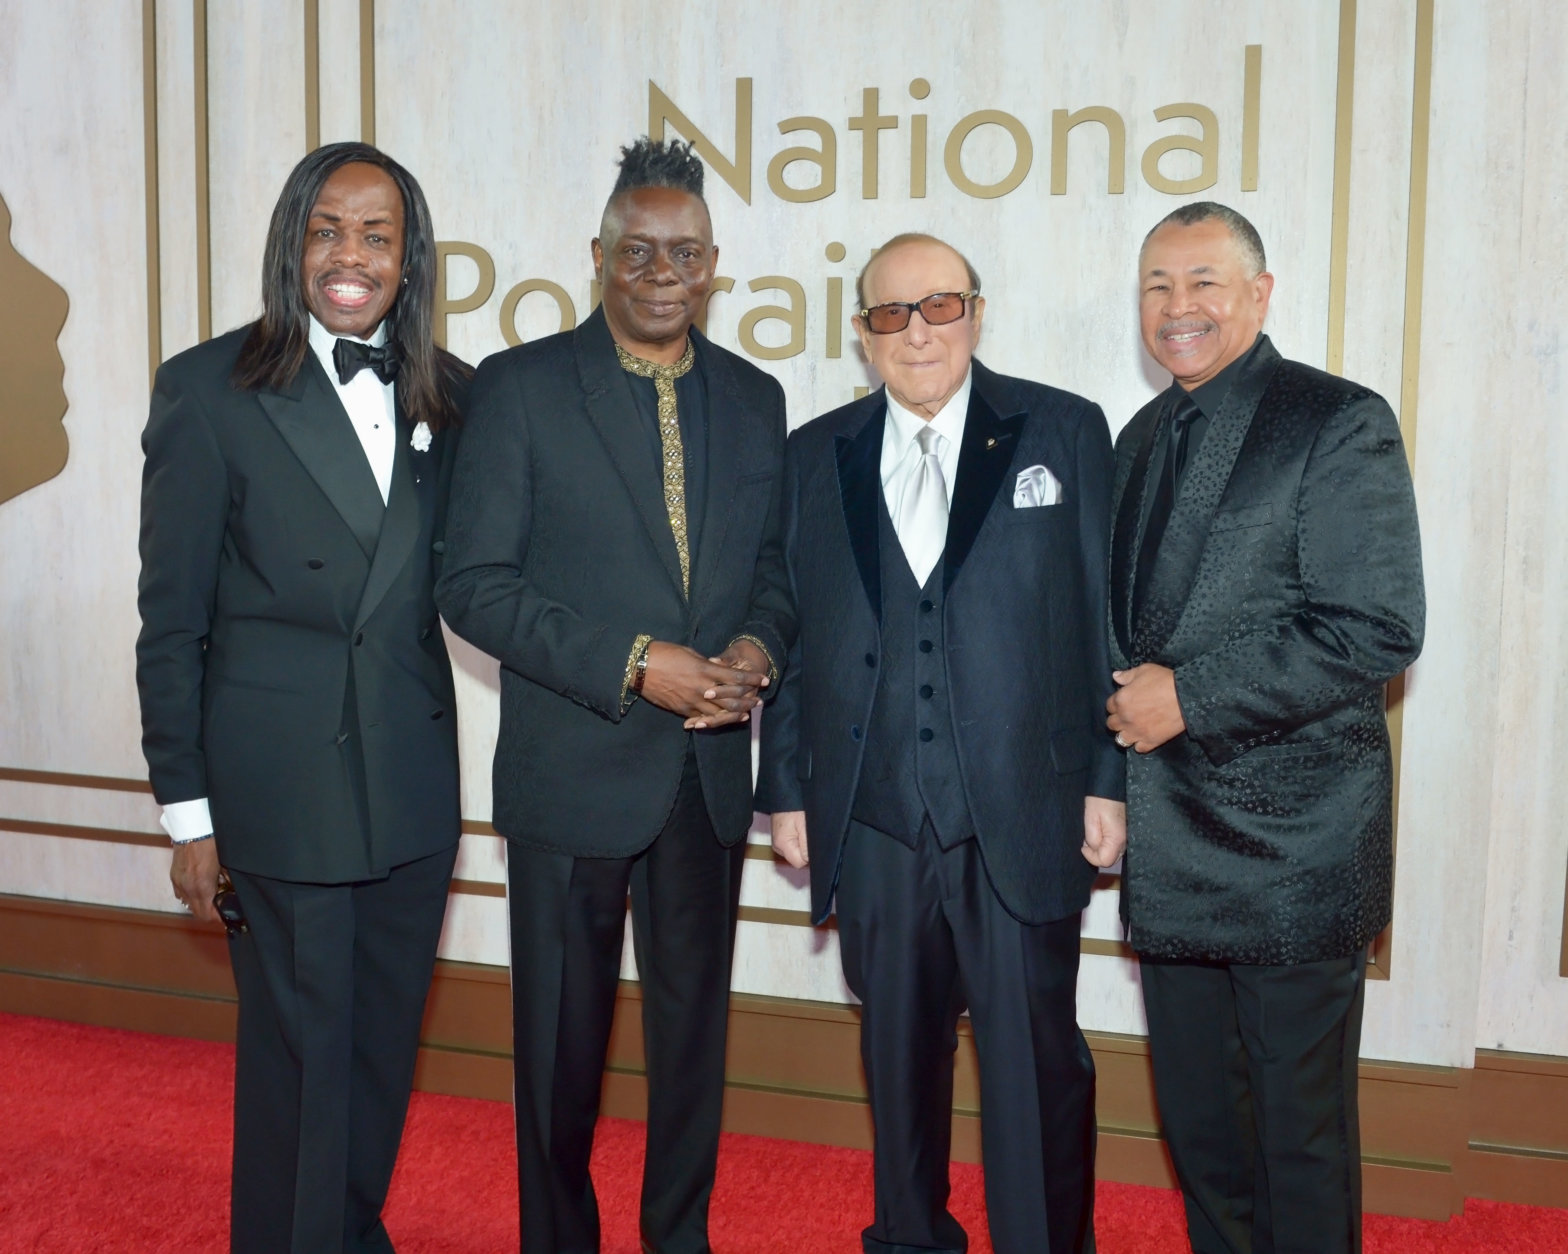 """<p dir=""""ltr"""">Finally, from the music world, the gala honored Earth, Wind &amp; Fire, including Maurice White (posthumously), Philip Bailey, Verdine White and Ralph Johnson.</p> <p dir=""""ltr"""">&#8220;What&#8217;s not to love?&#8221; Sajet said. &#8220;They&#8217;ve been one of the longest-serving bands, won many Grammys and all sorts of amazing awards. They&#8217;ve just got lots of flair and excitement.&#8221;</p> <p dir=""""ltr"""">The prize was presented by Hall of Fame producer Clive Davis.</p> <p dir=""""ltr"""">Earth, Wind &amp; Fire even gave a special performance.</p> <p>&#8220;The Kogod Courtyard is the greatest place to have a party in all of Washington,&#8221; Sajet said. &#8220;It has this glass canopy made by Norman Foster. It&#8217;s really an undulating wave of glass. You can imagine when it&#8217;s lit up at night, it just sparkles.&#8221;</p>"""